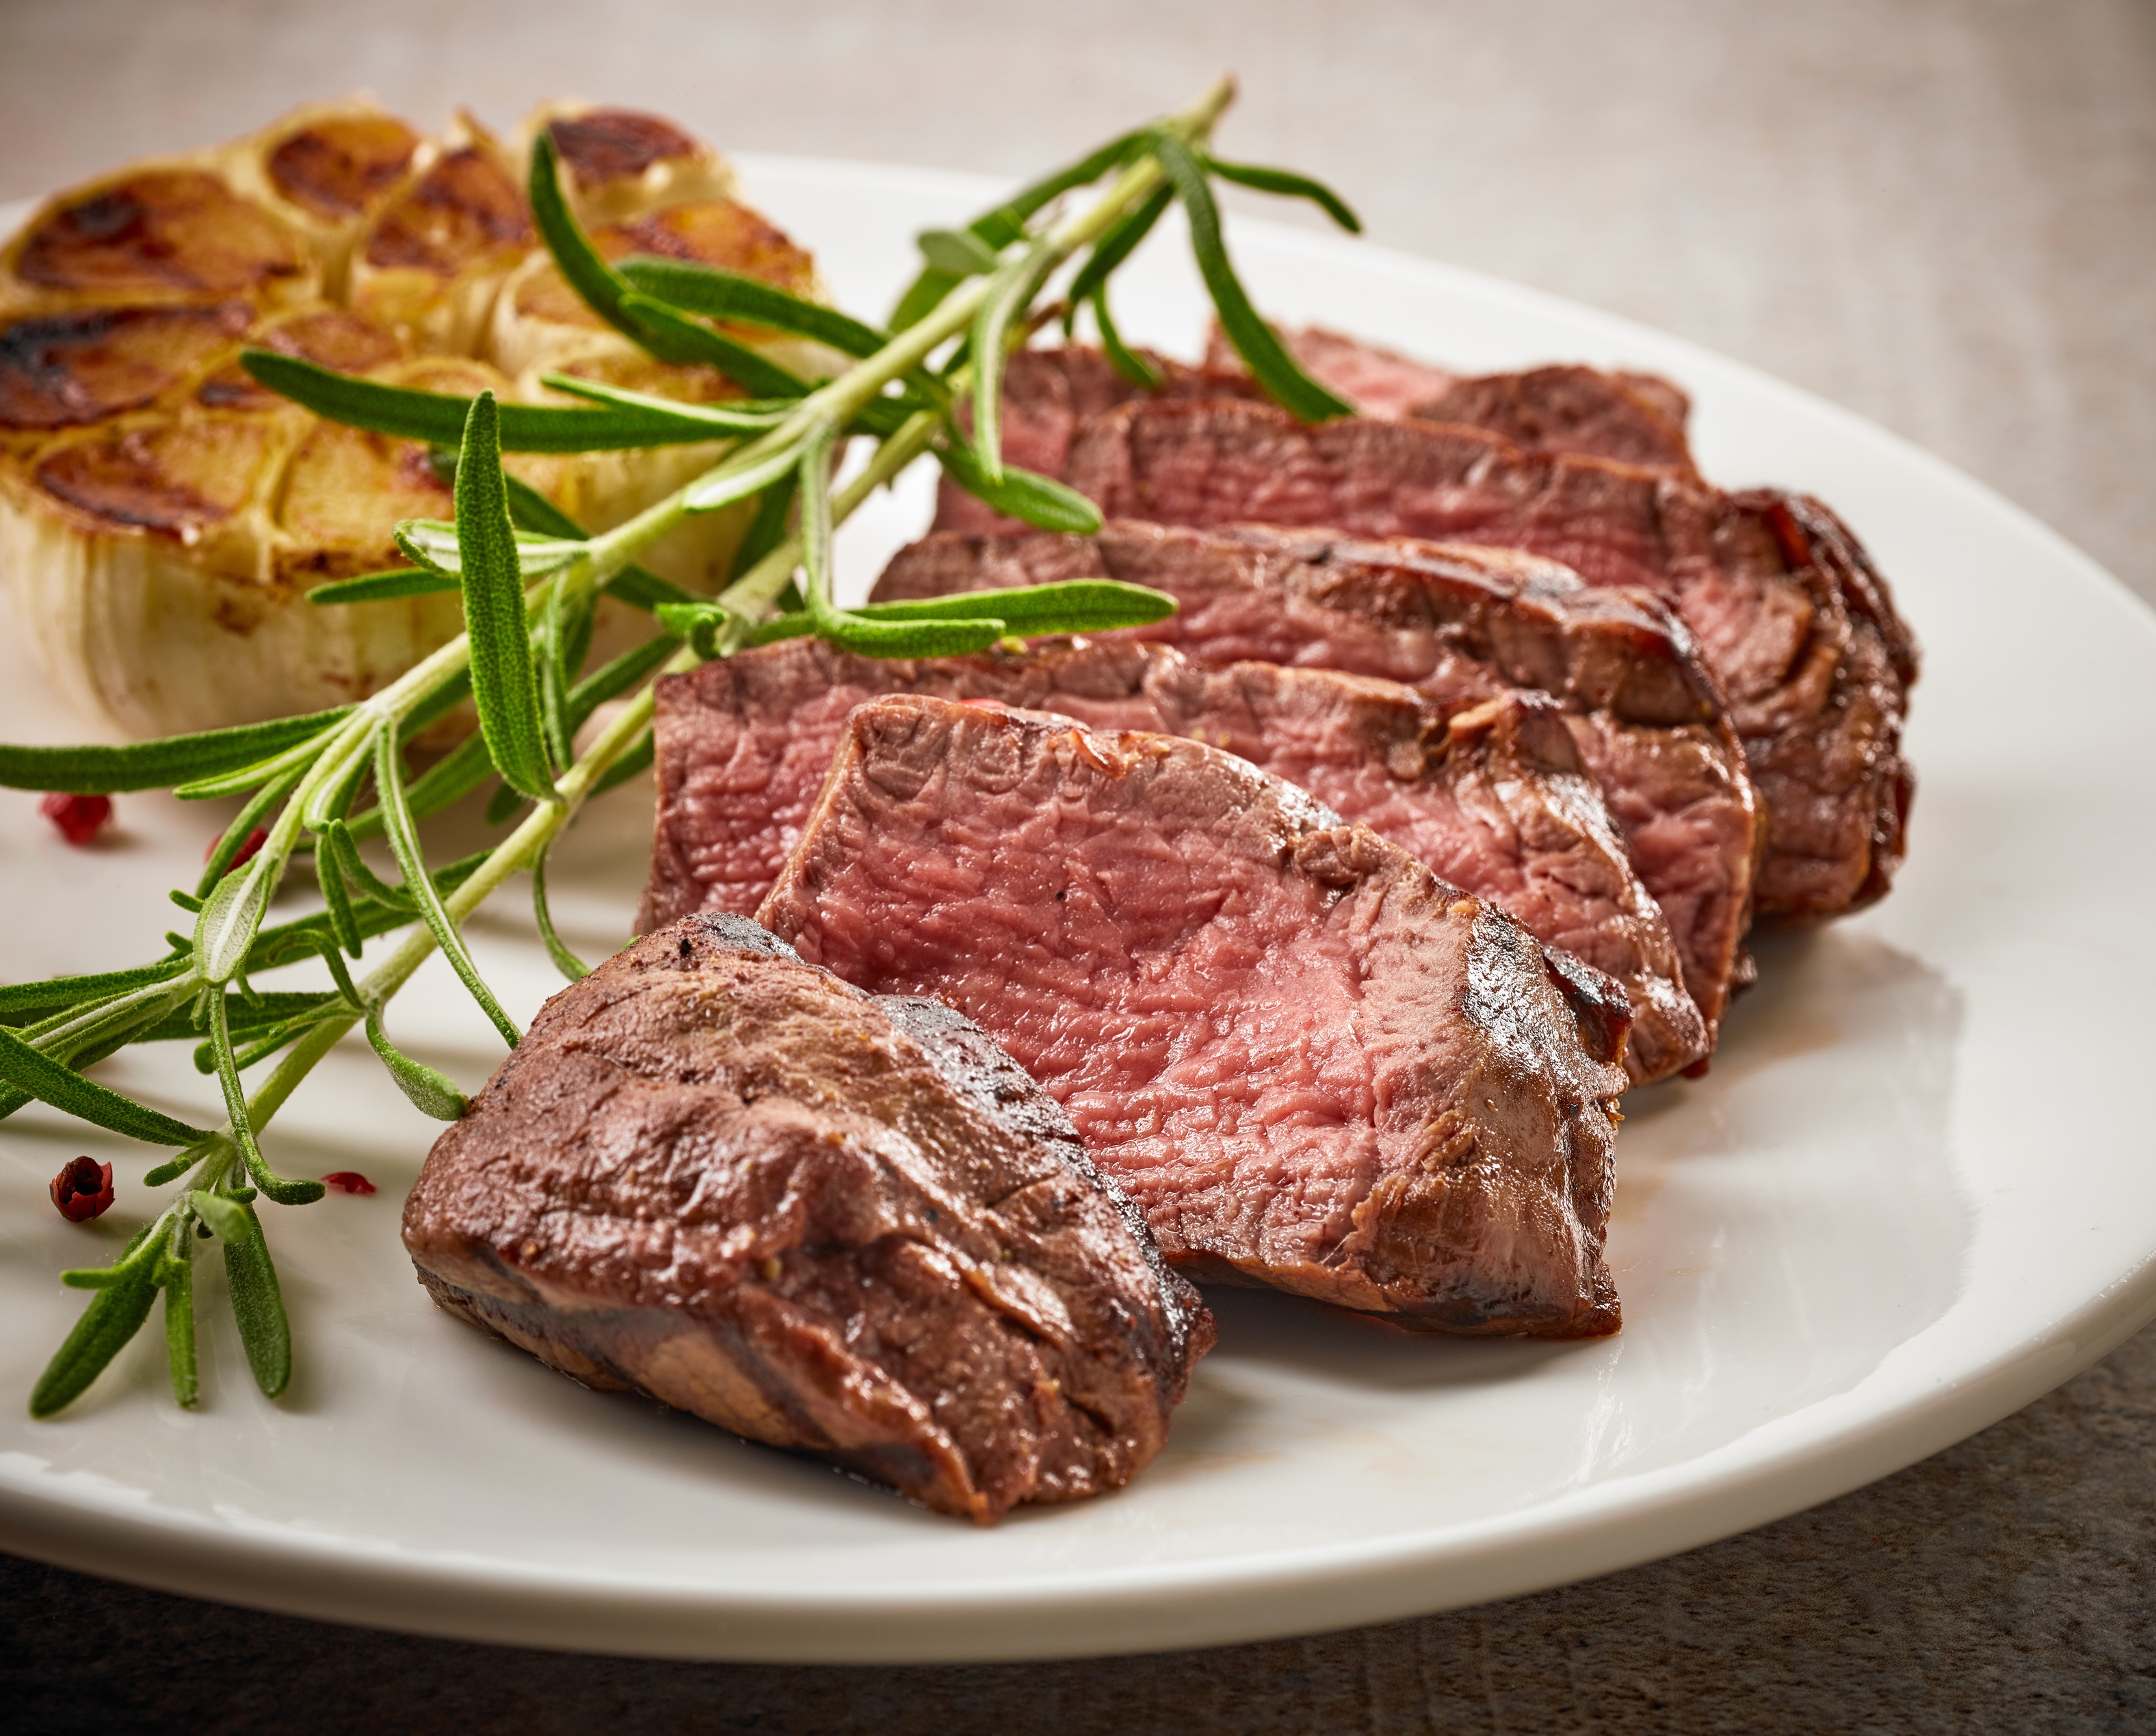 Forum on this topic: Why You Should be Grilling Grass-Fed Lamb, why-you-should-be-grilling-grass-fed-lamb/